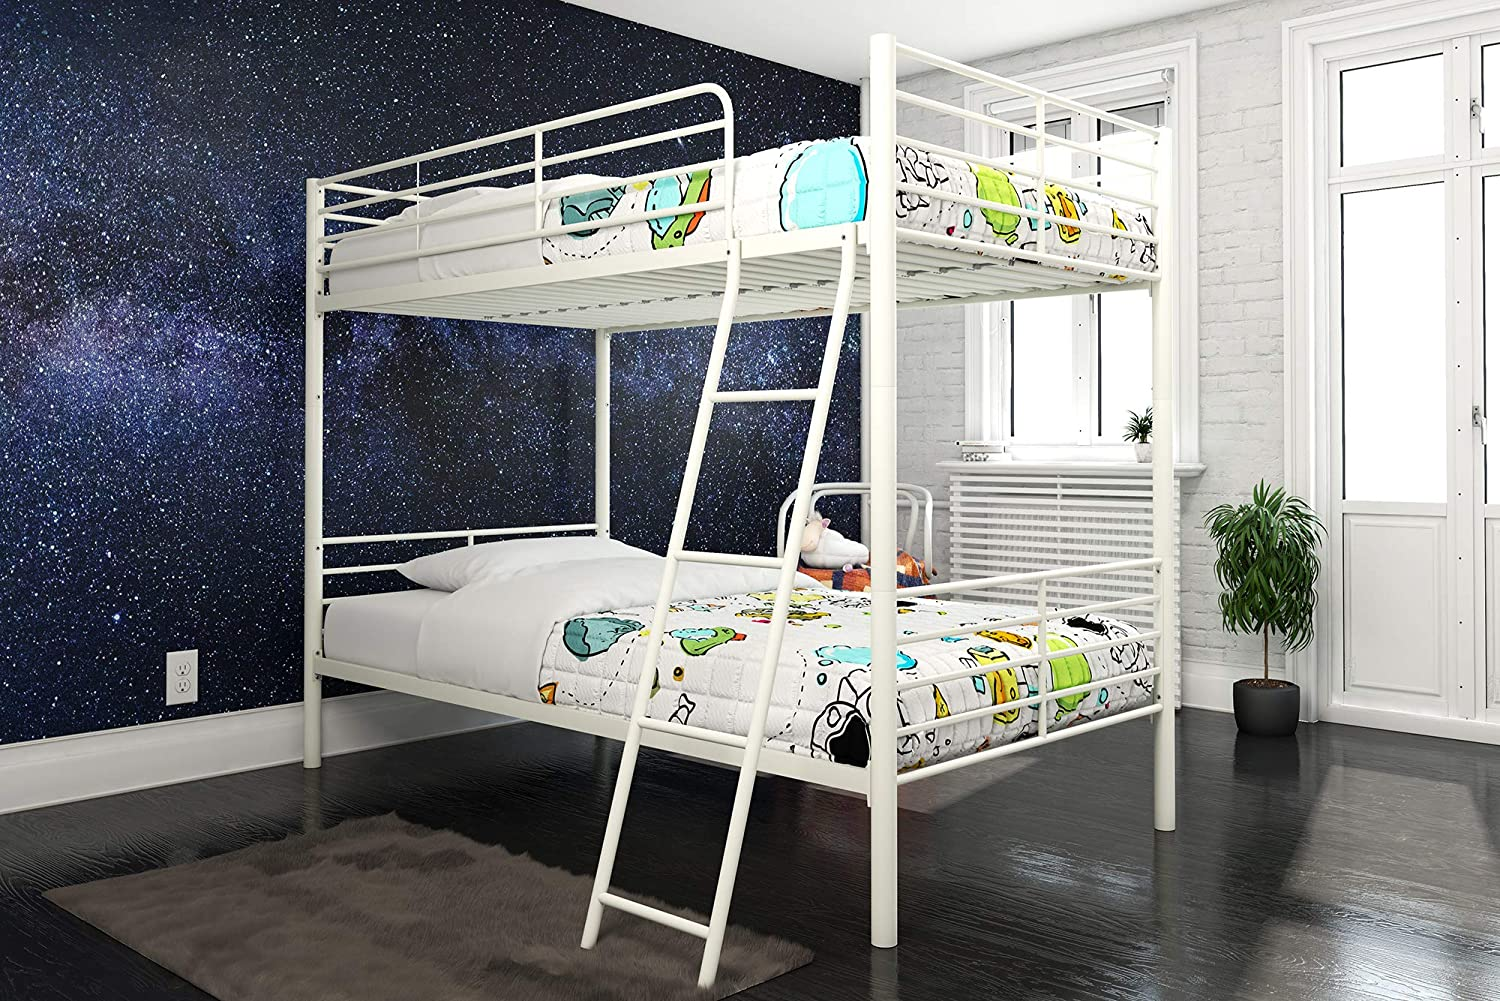 DHP Tailor Convertible Bunk bed Converts to Beds Max 73% OFF Twin two Raleigh Mall